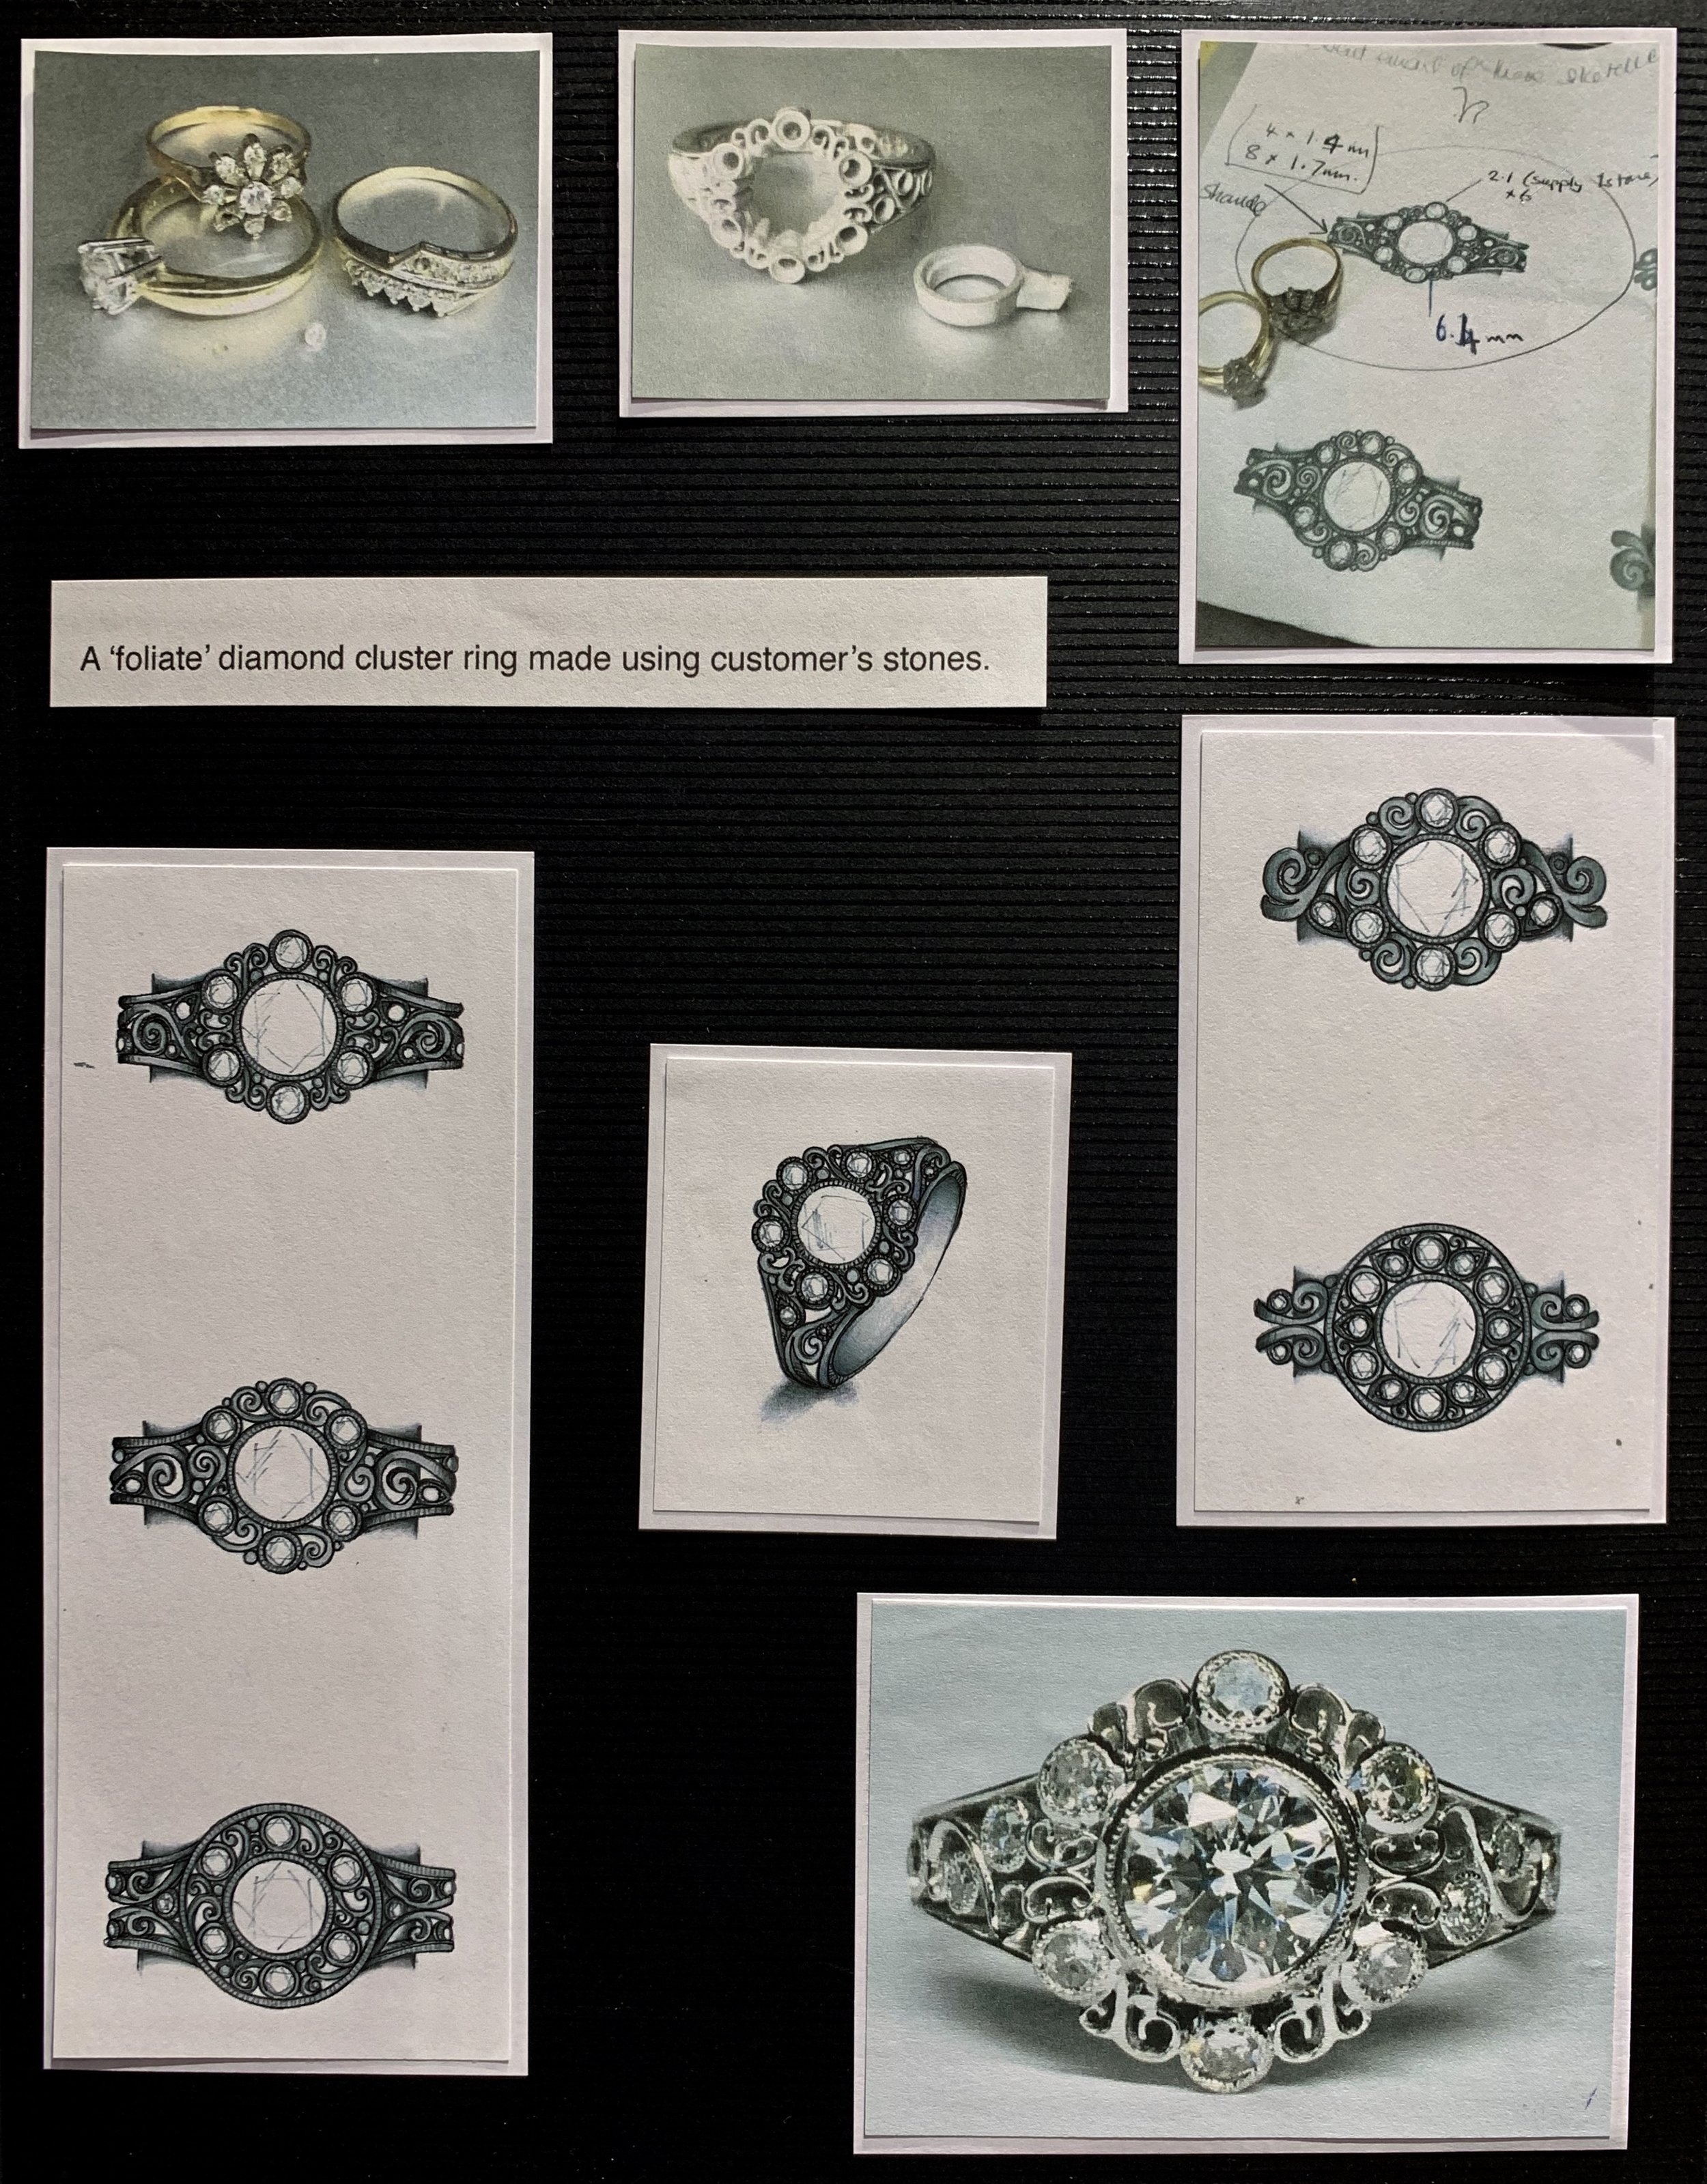 Redesign of diamonds from a customers' various rings.